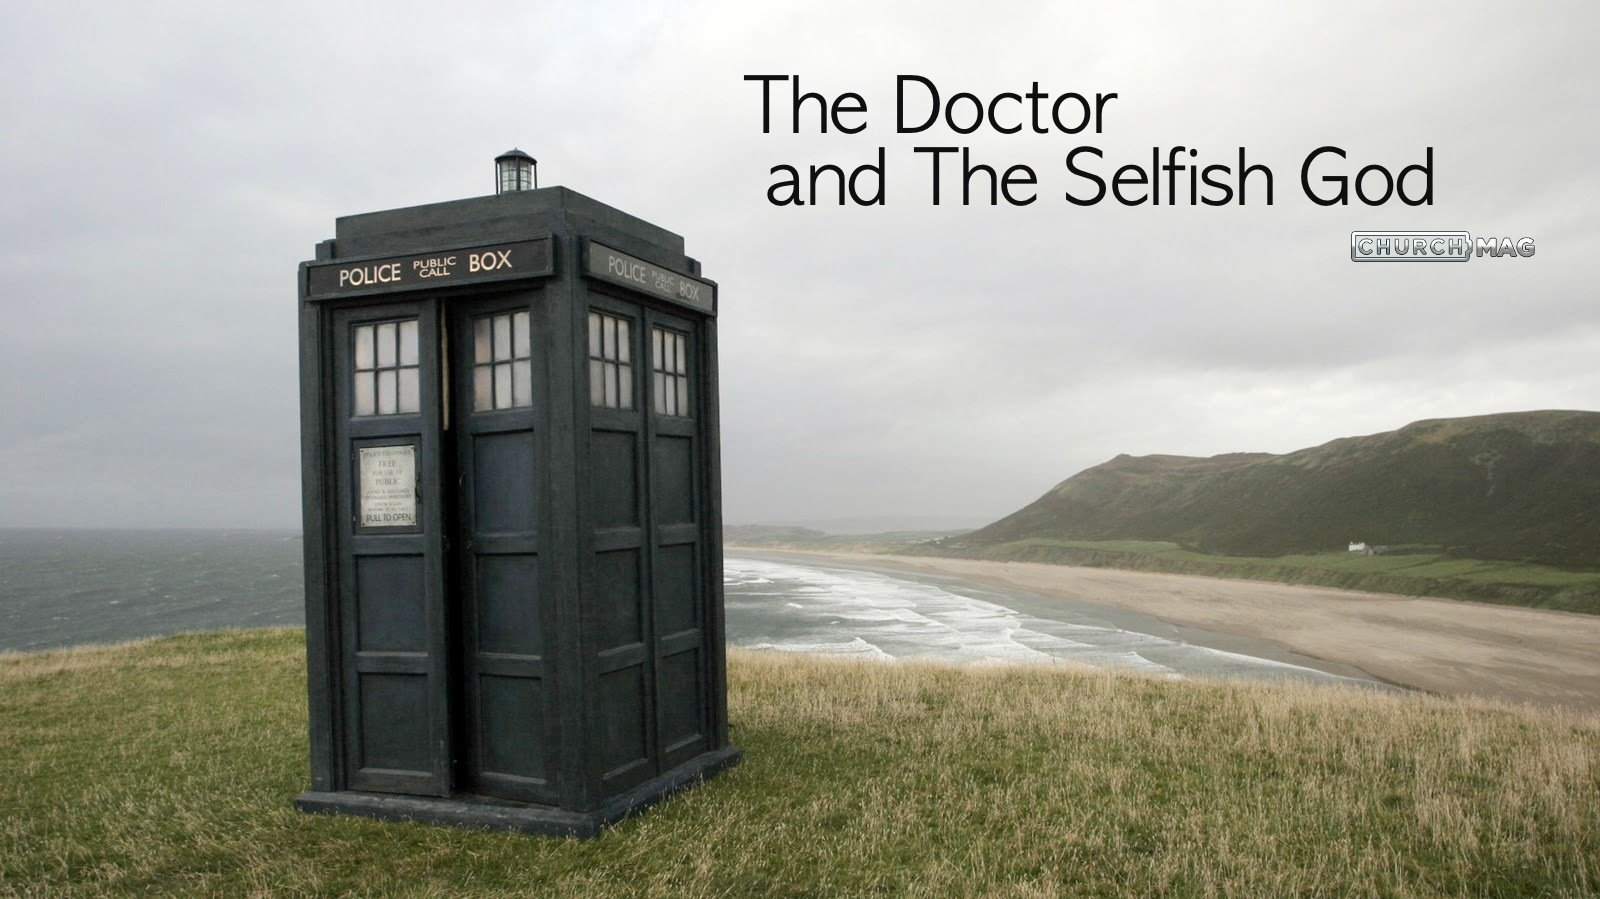 Science Fiction & Biblical Reality: The Doctor and The Selfish God